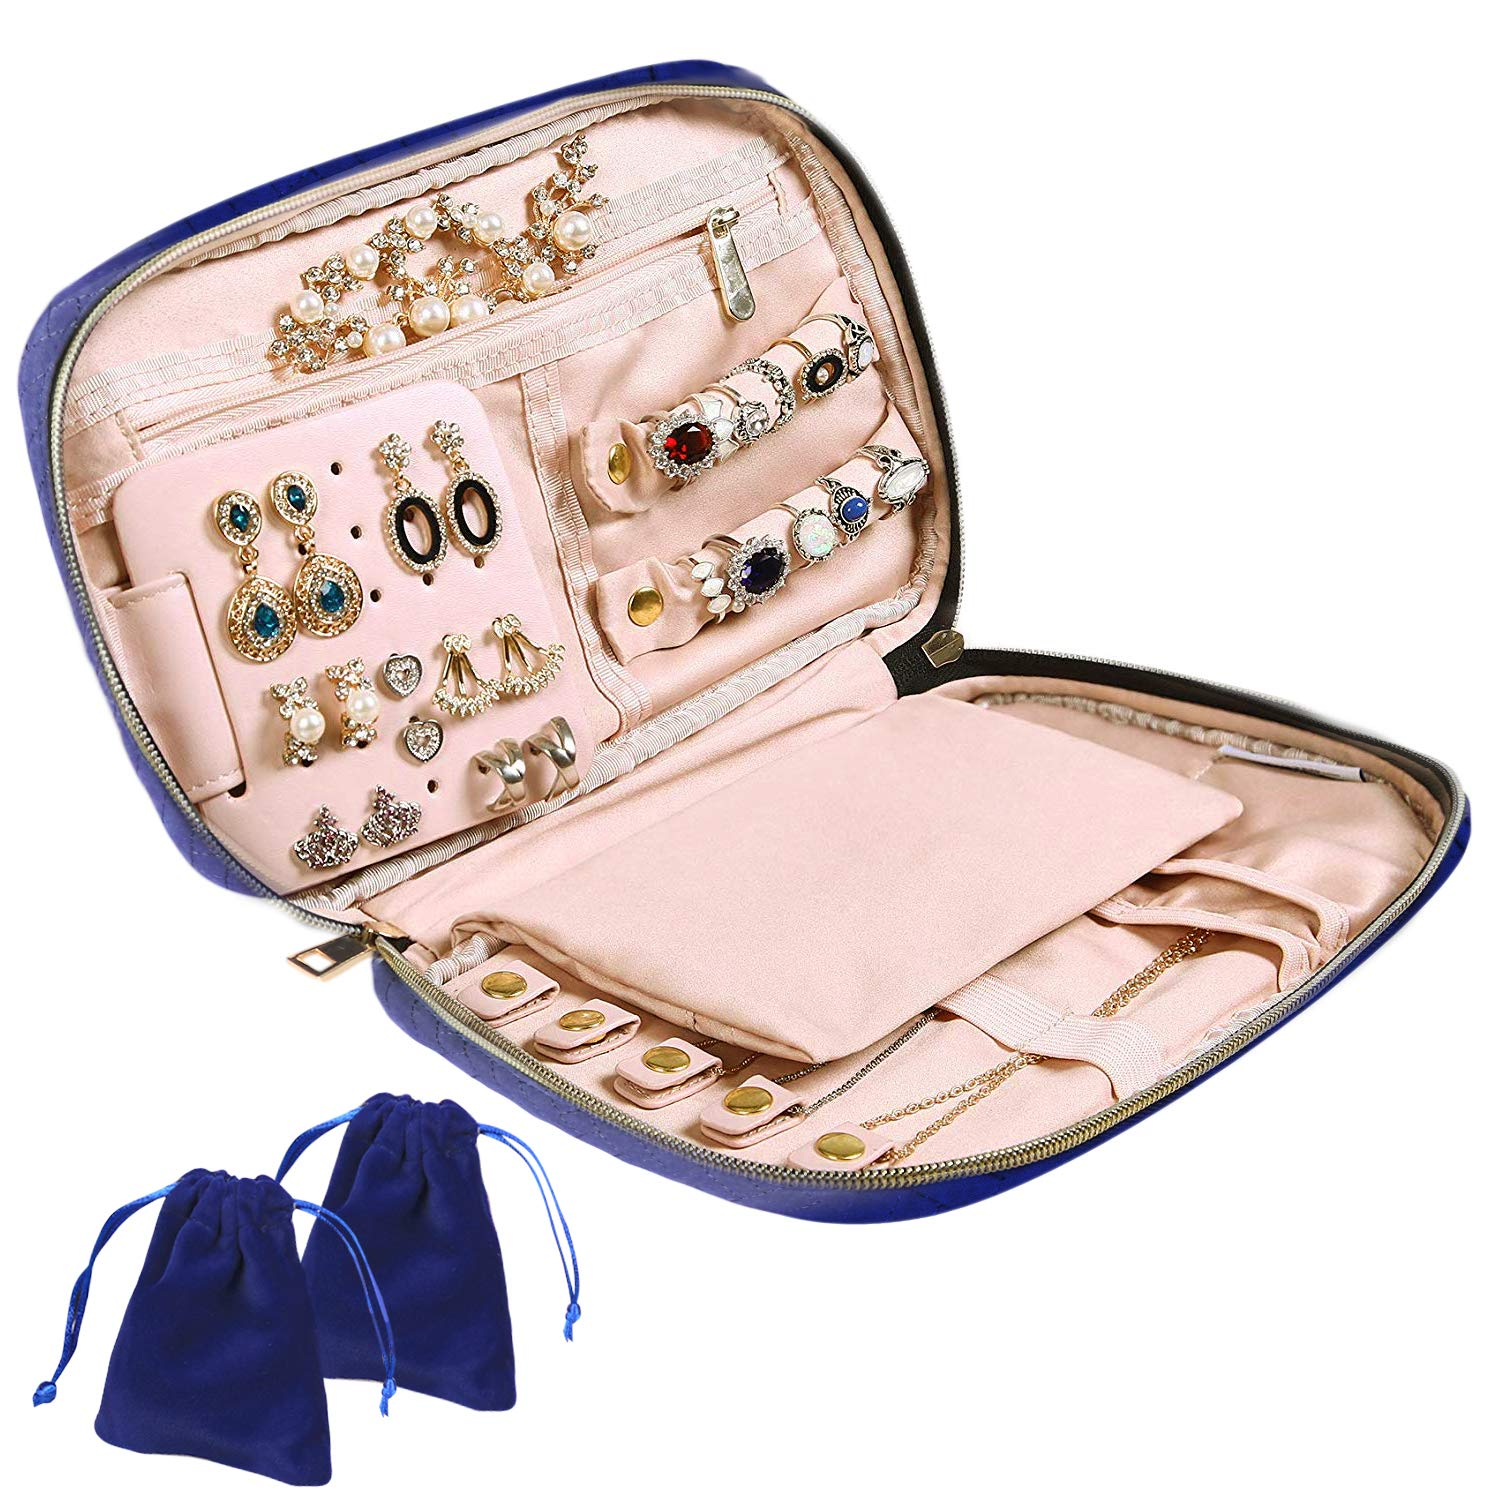 PANTIPINKY Jewelry Case Organizer Travel for Necklaces Rings Earrings Bracelet, Jewelry Storage Bag Containers and Display, Drawstring Pouch Purse for Jewelry Collection